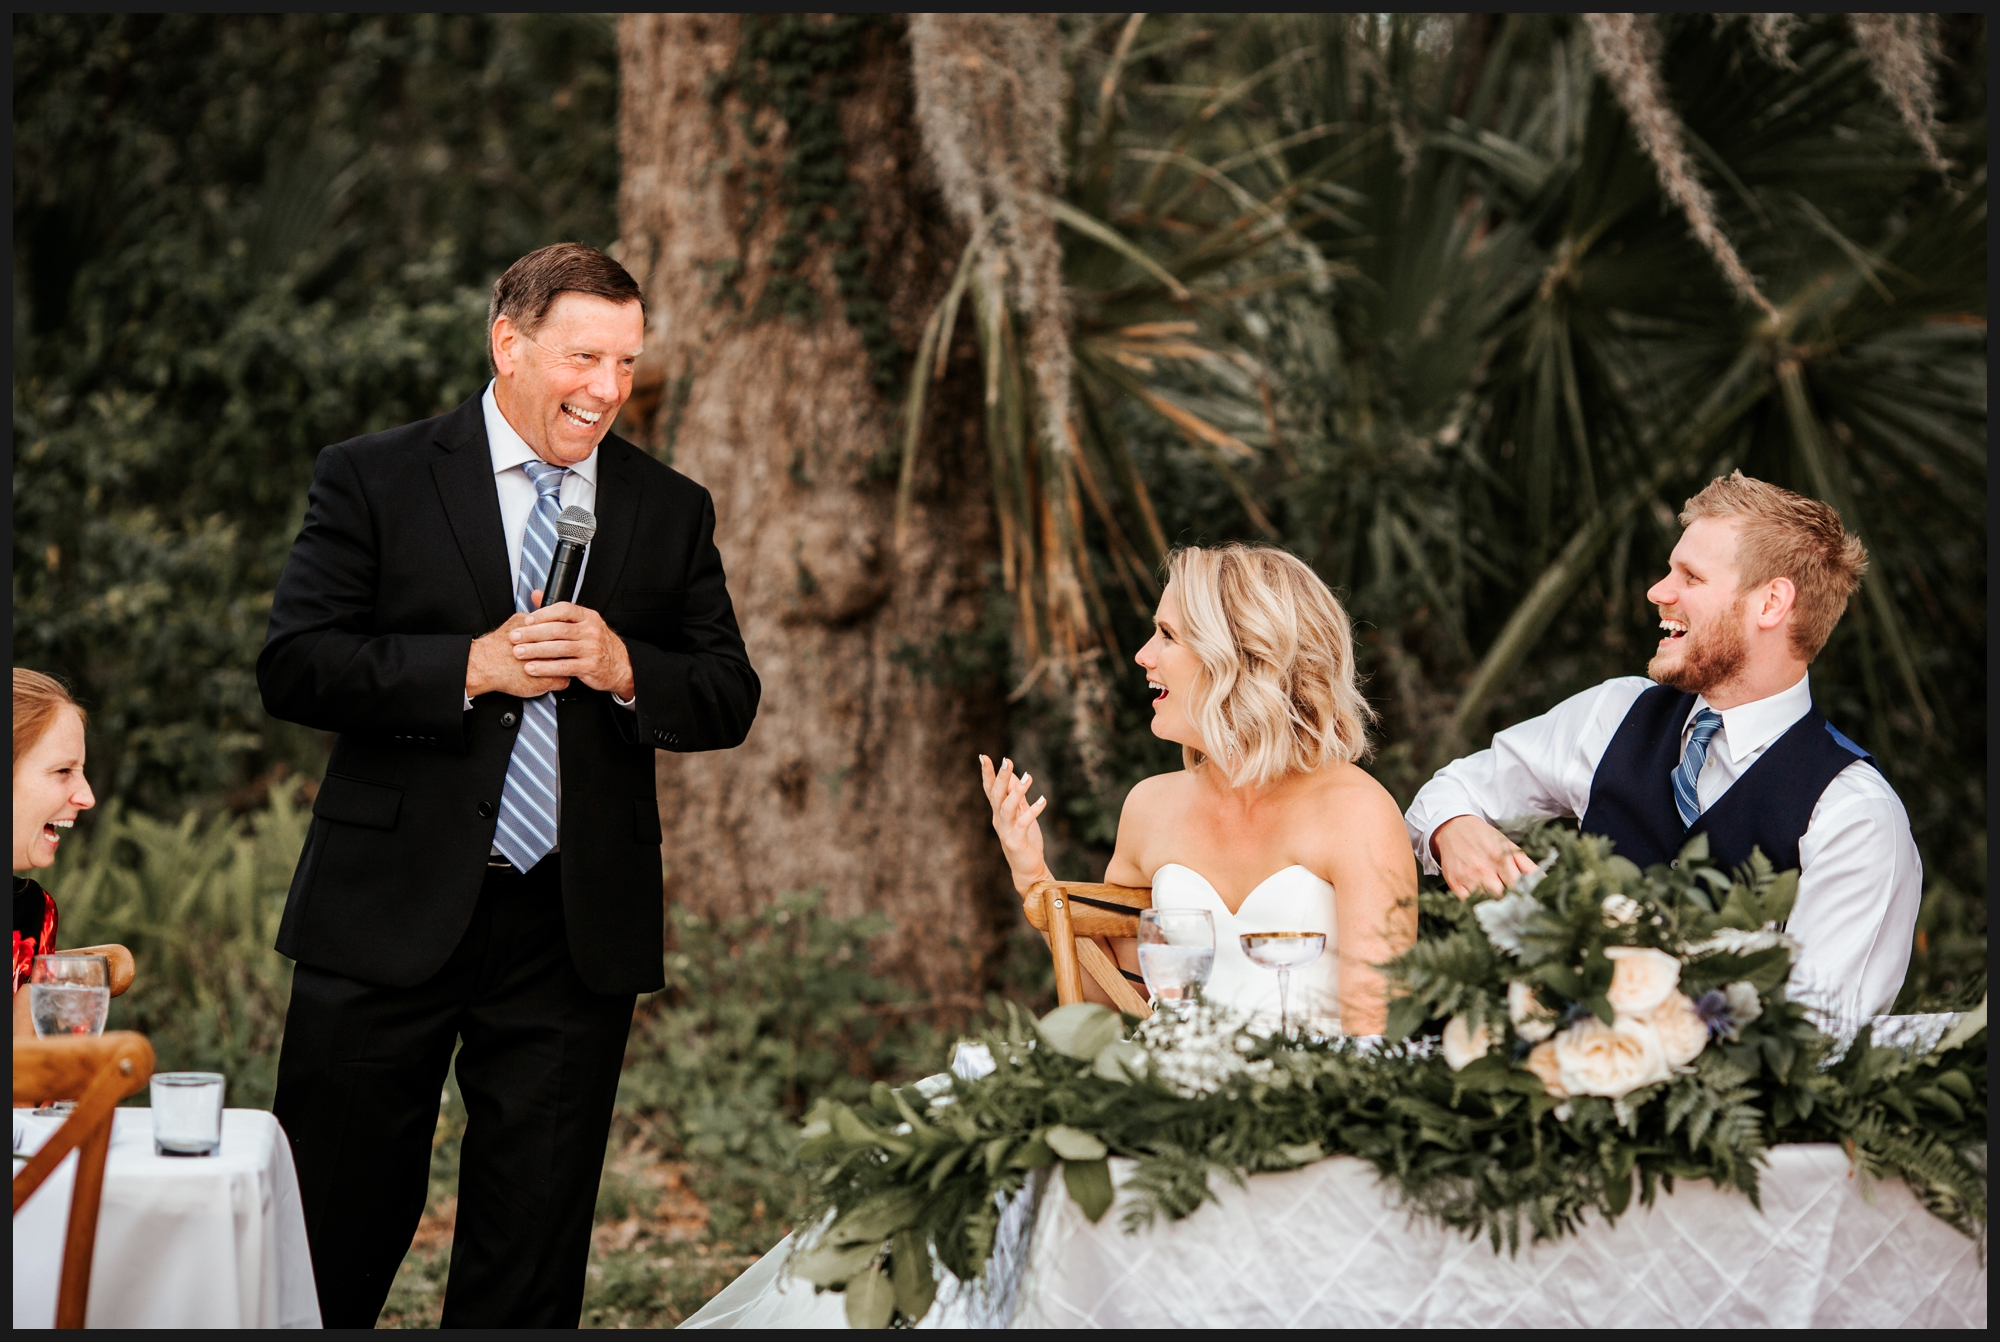 Orlando-Wedding-Photographer-destination-wedding-photographer-florida-wedding-photographer-bohemian-wedding-photographer_1539.jpg